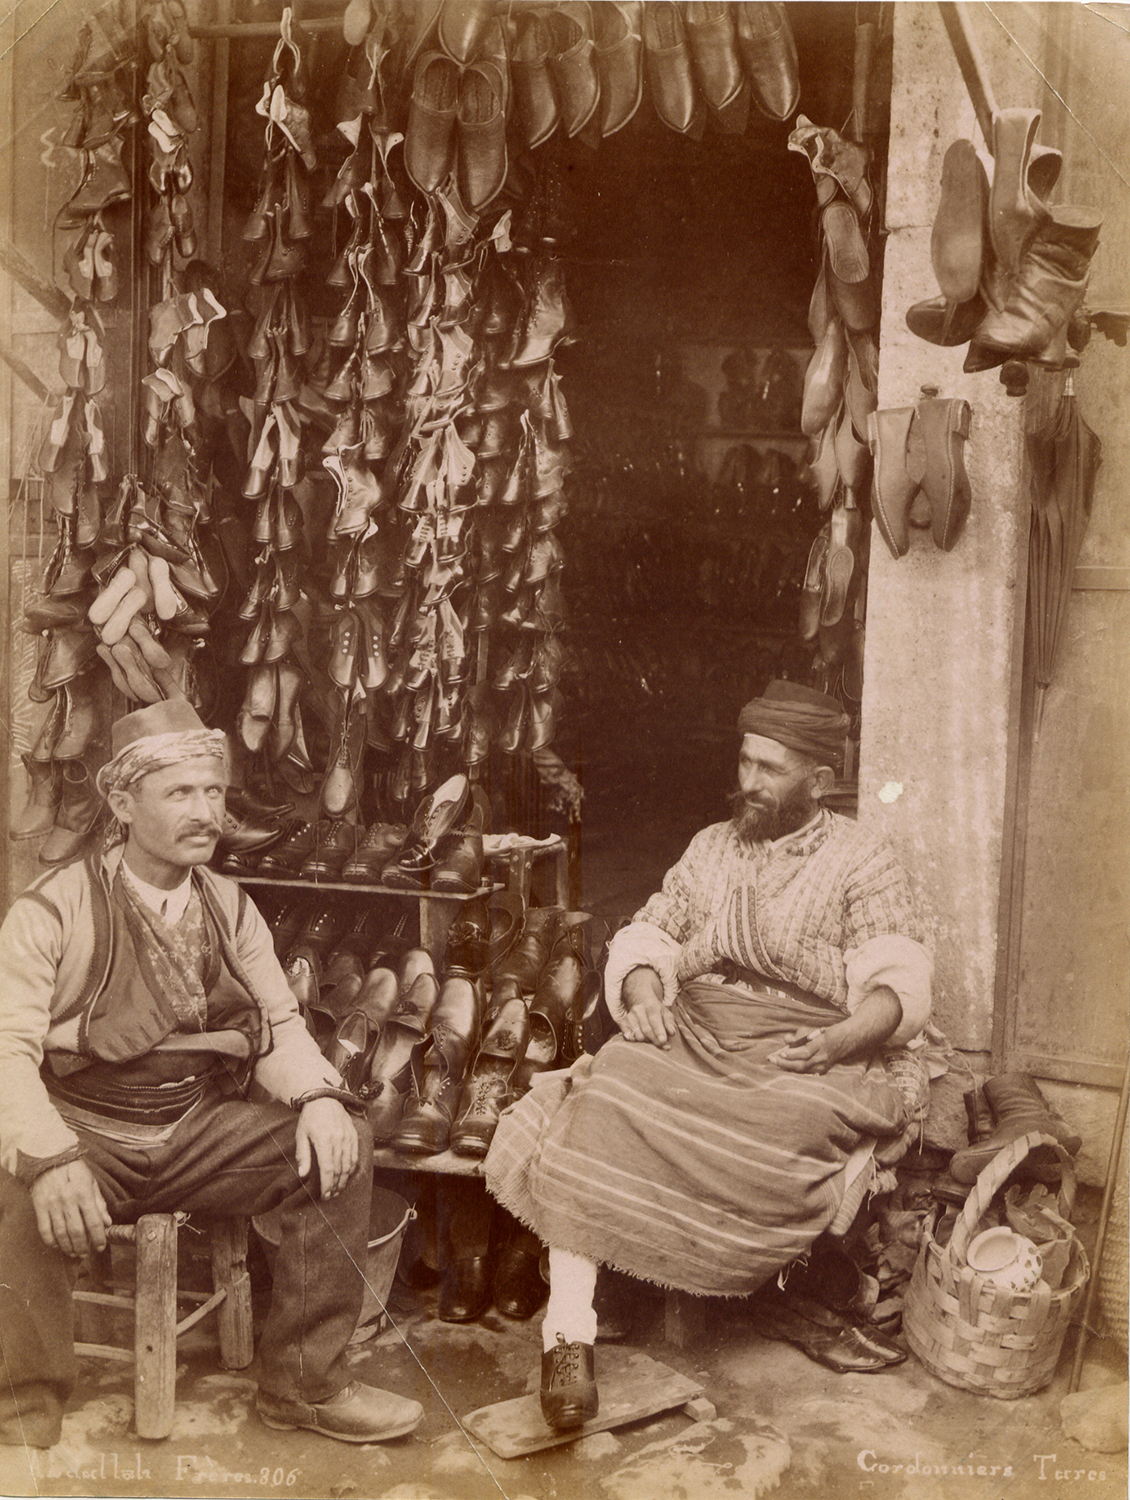 Abdullah Frères, 1870s, Turkish shoemakers.